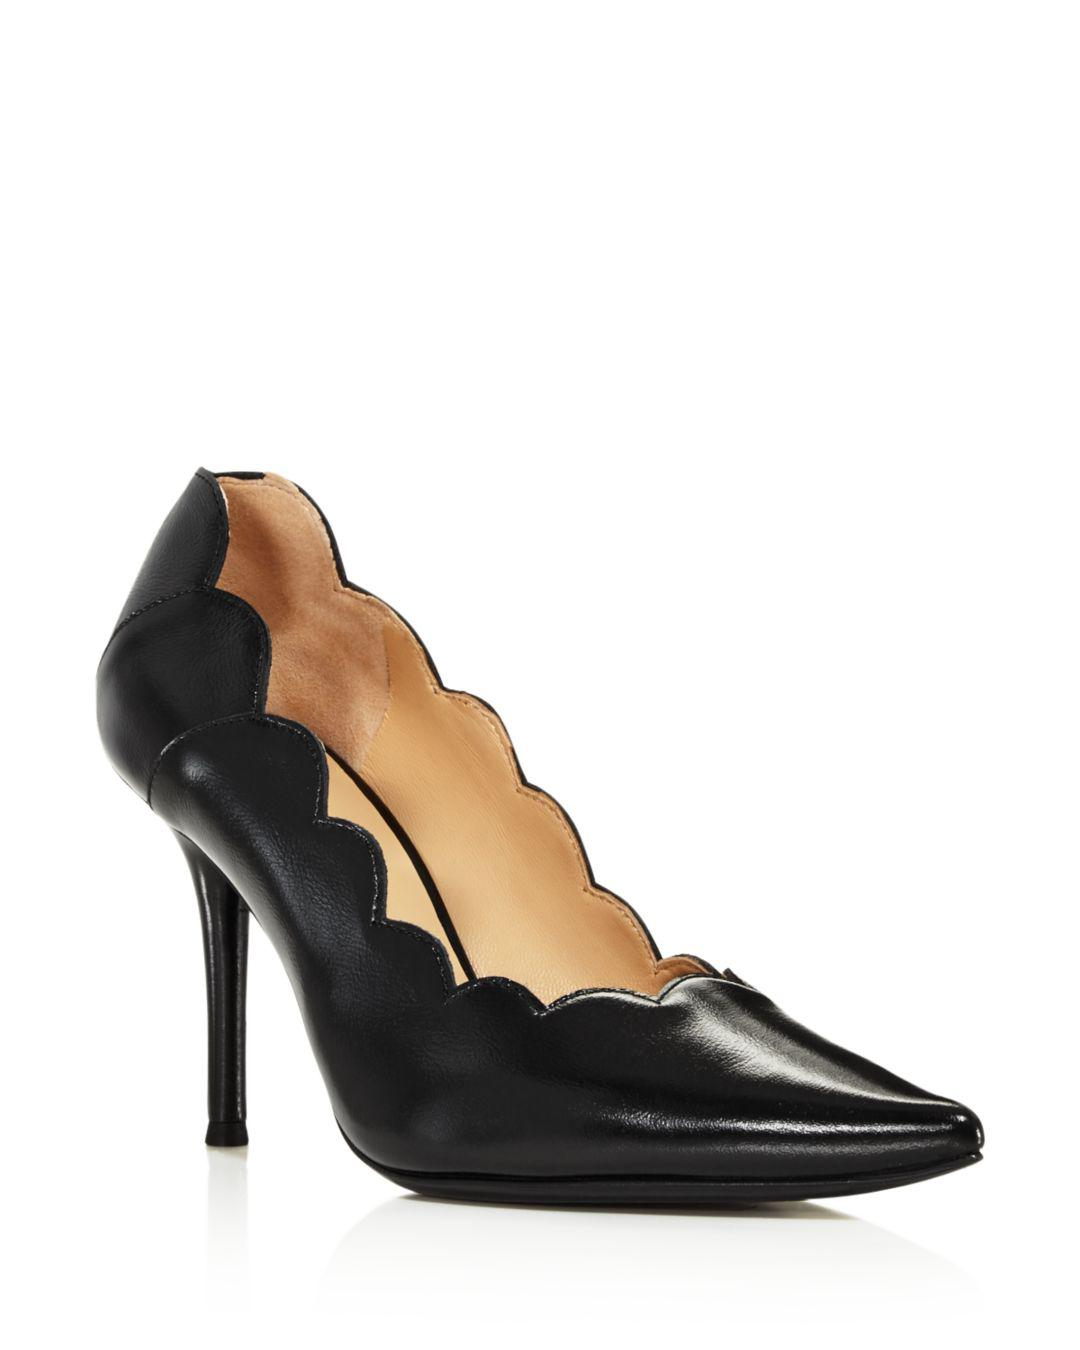 692100300999 Lyst - Chloé Women s Lauren Scalloped Leather High-heel Pumps in ...